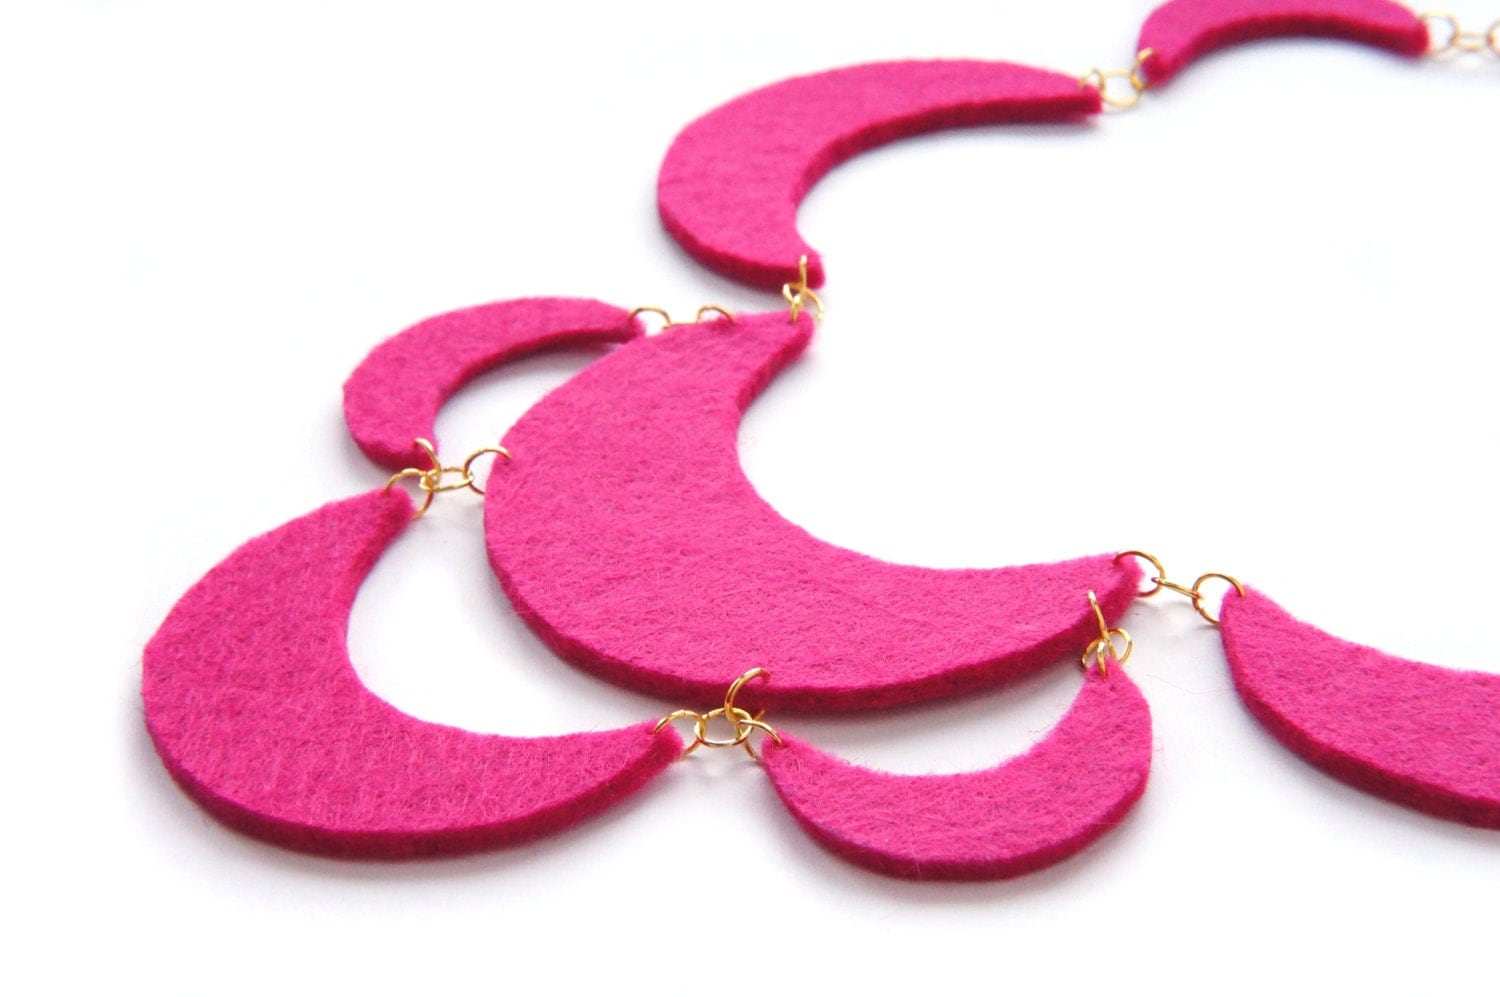 Felt Necklace, Pink necklace, Fuchsia necklace, Statement necklace, Christmas gift, For her - art2dress